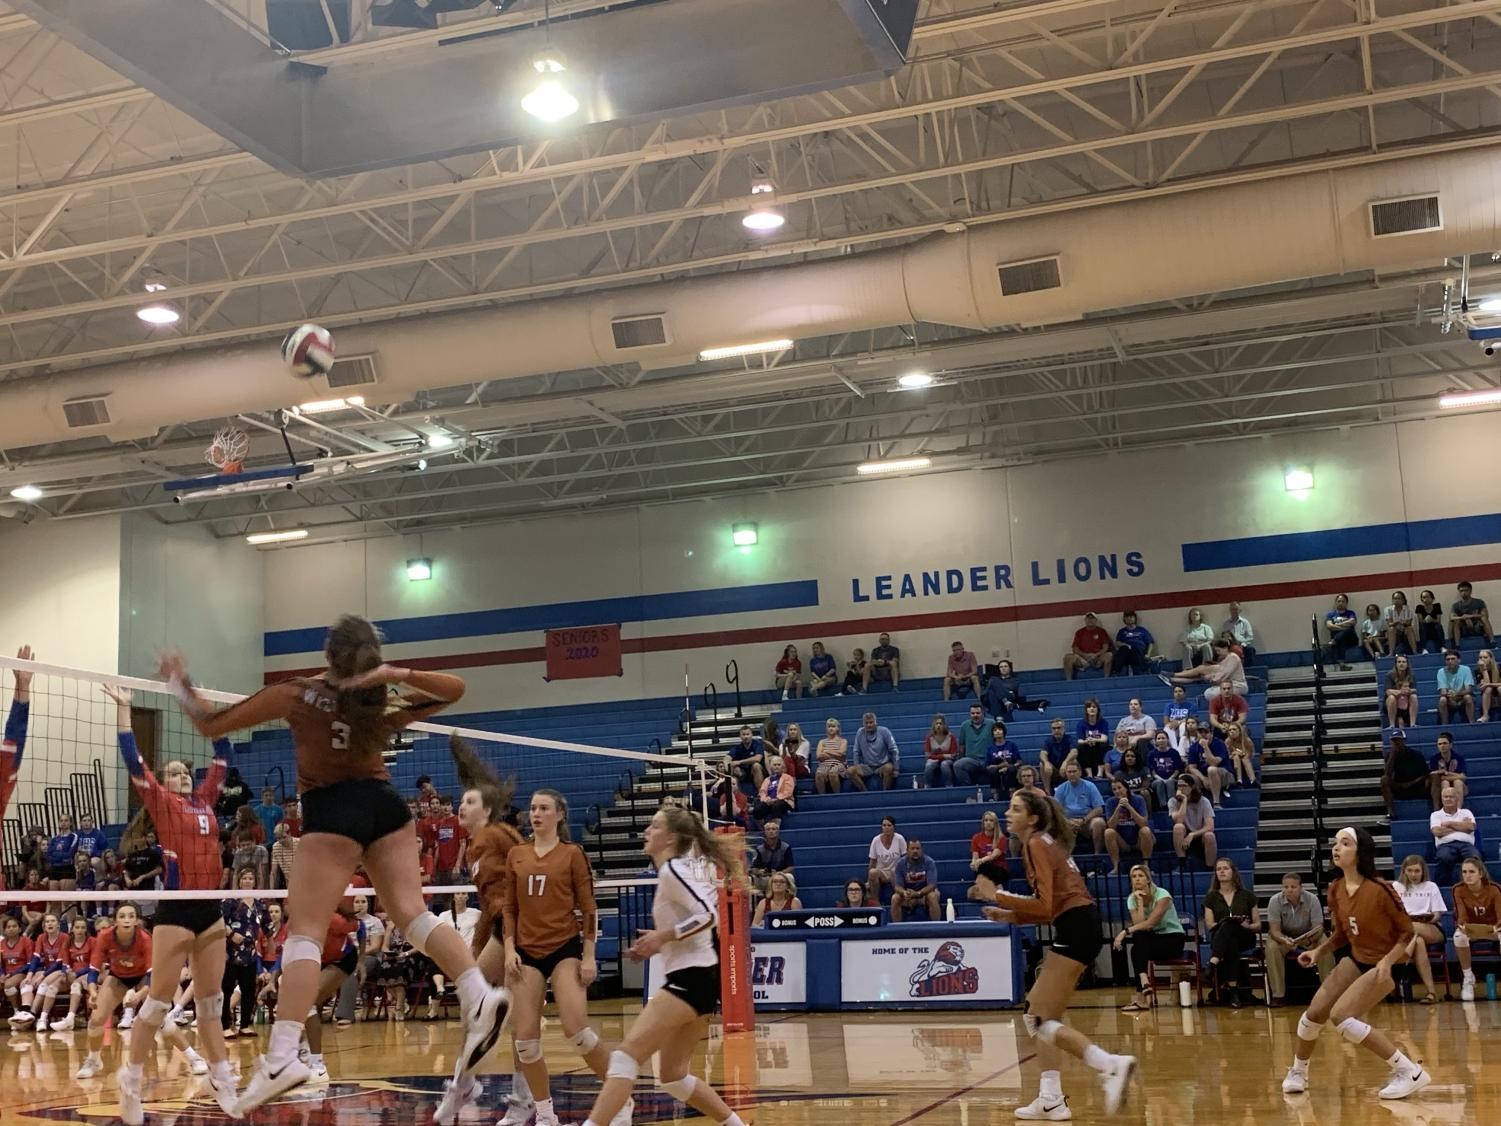 Abby+Gregorczyk+%2721+gets+ready+to+spike+the+ball+over+the+net.++Meanwhile%2C+the+Leander+Lions+are+up+against+the+net%2C+ready+to+hit+the+ball+if+she+gets+it+over.